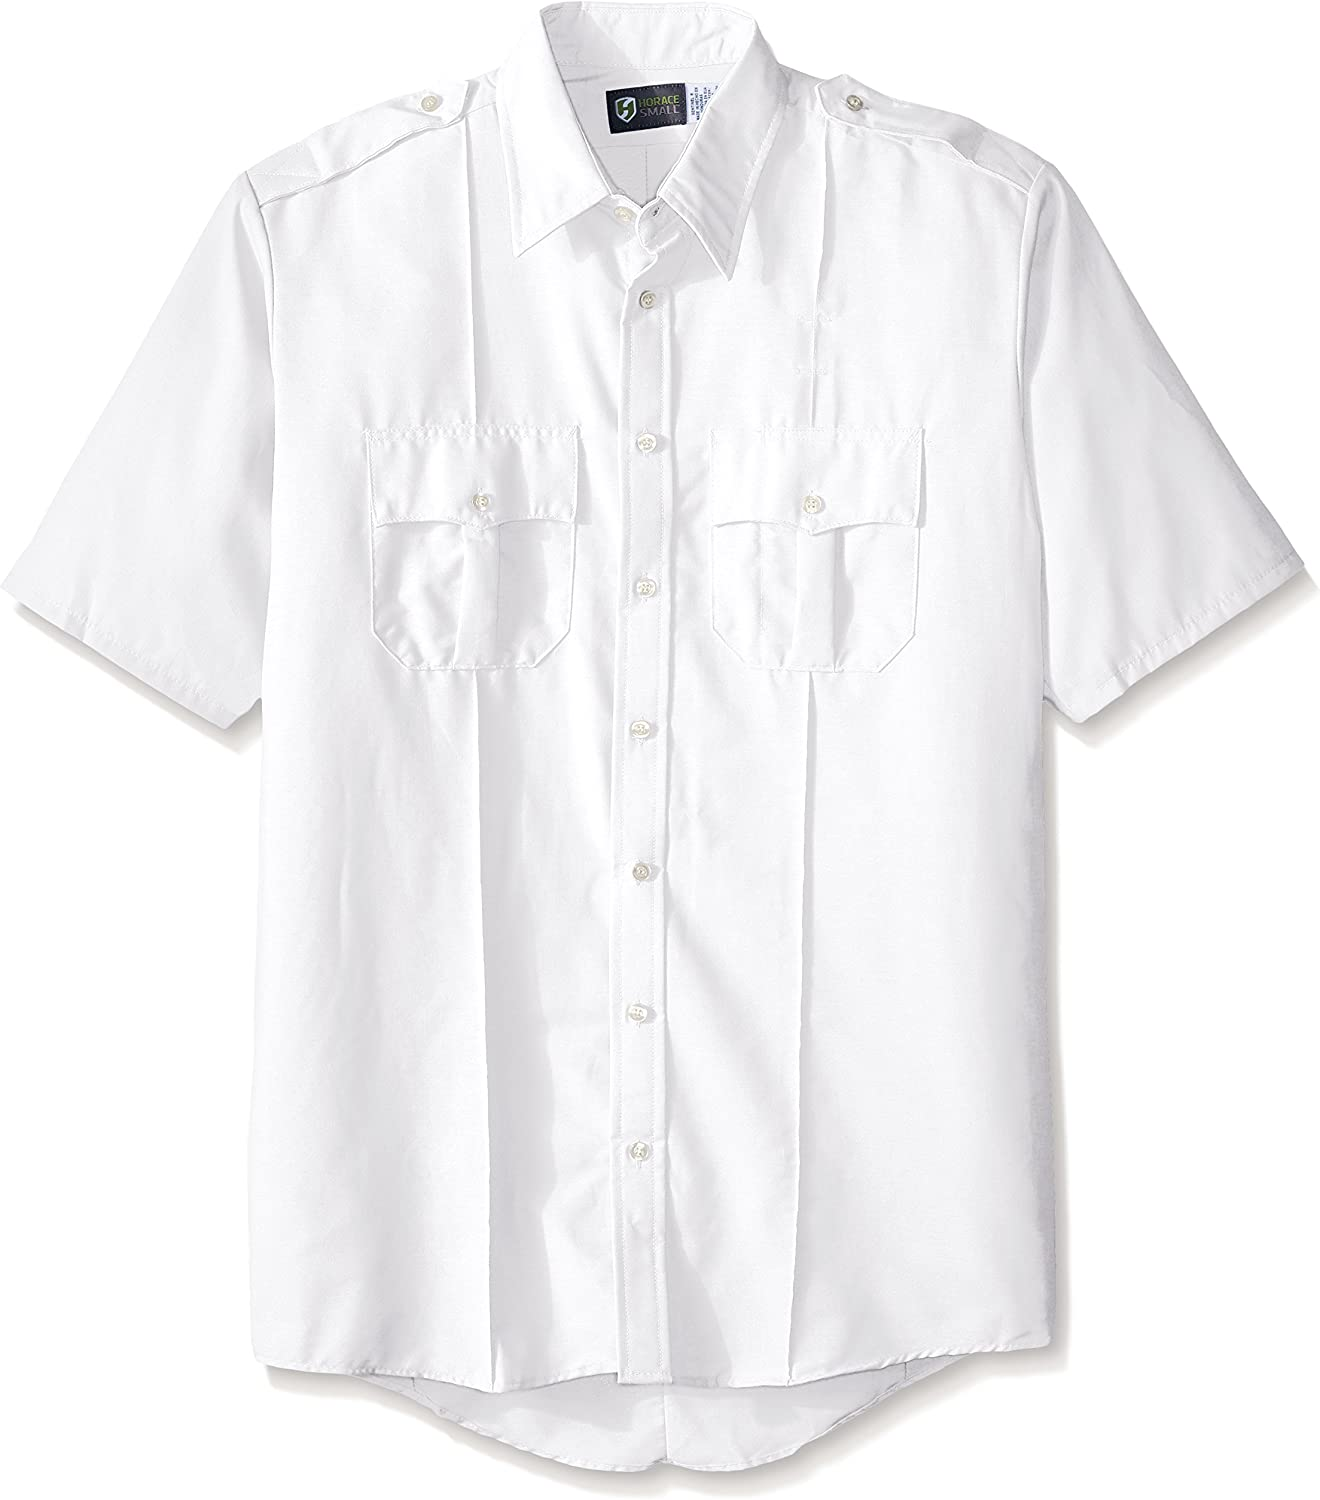 Horace Small Men's Professional Short Sleeve Security Big-Tall Shirt